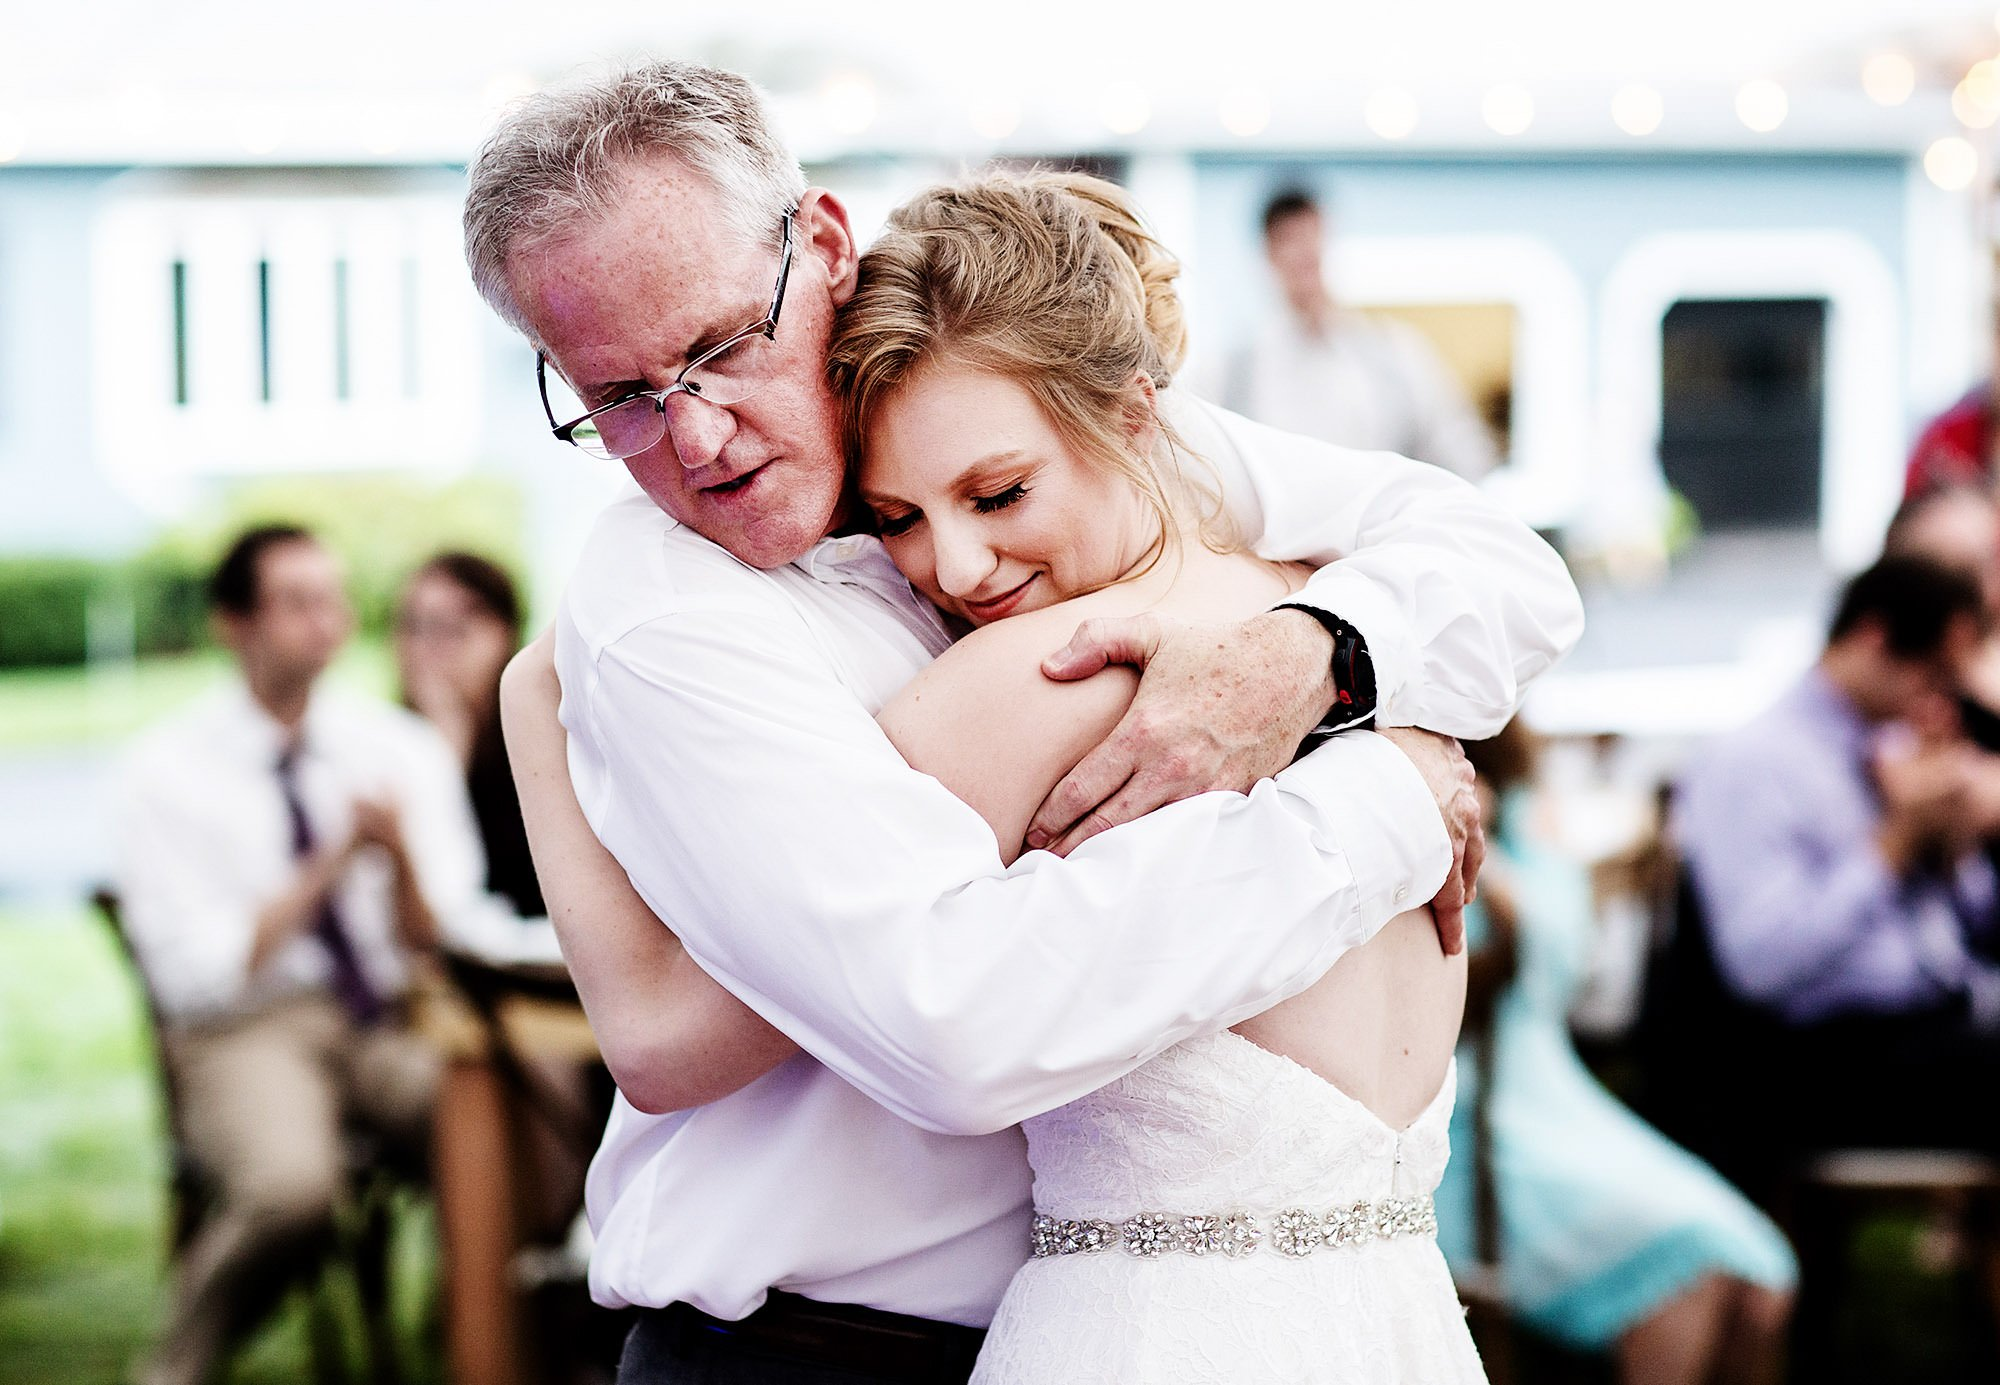 New Hampshire Backyard Wedding  I  The bride hugs her dad during their dance.